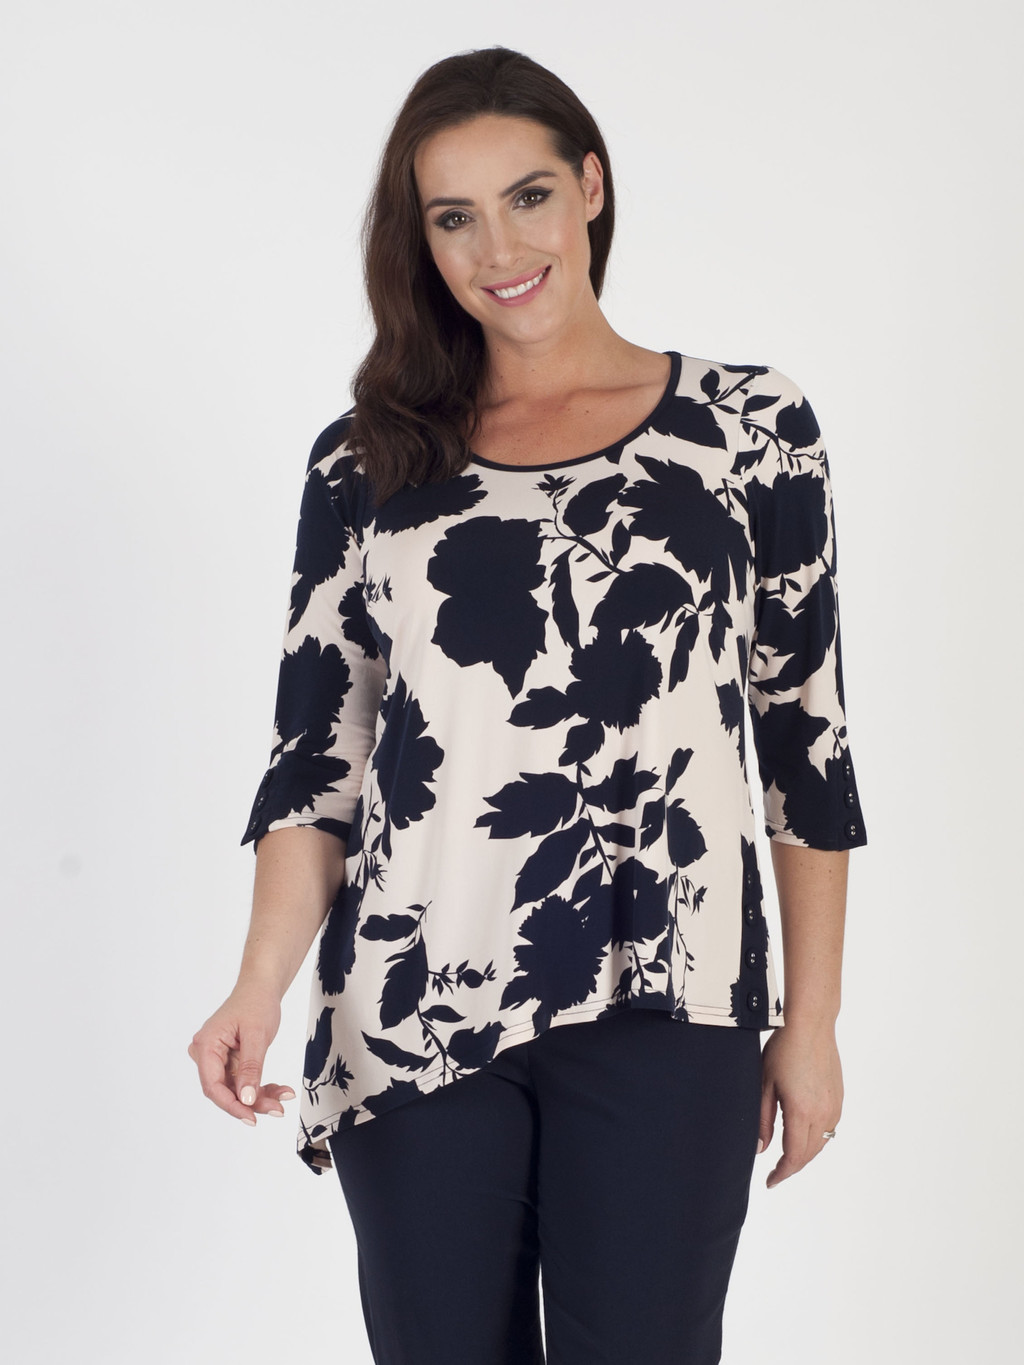 Blush/Navy Floral Print Jersey Tunic - neckline: round neck; predominant colour: ivory/cream; secondary colour: black; occasions: casual; length: standard; style: top; fibres: polyester/polyamide - stretch; fit: body skimming; sleeve length: 3/4 length; sleeve style: standard; texture group: silky - light; pattern type: fabric; pattern: florals; pattern size: big & busy (top); multicoloured: multicoloured; season: s/s 2016; wardrobe: highlight